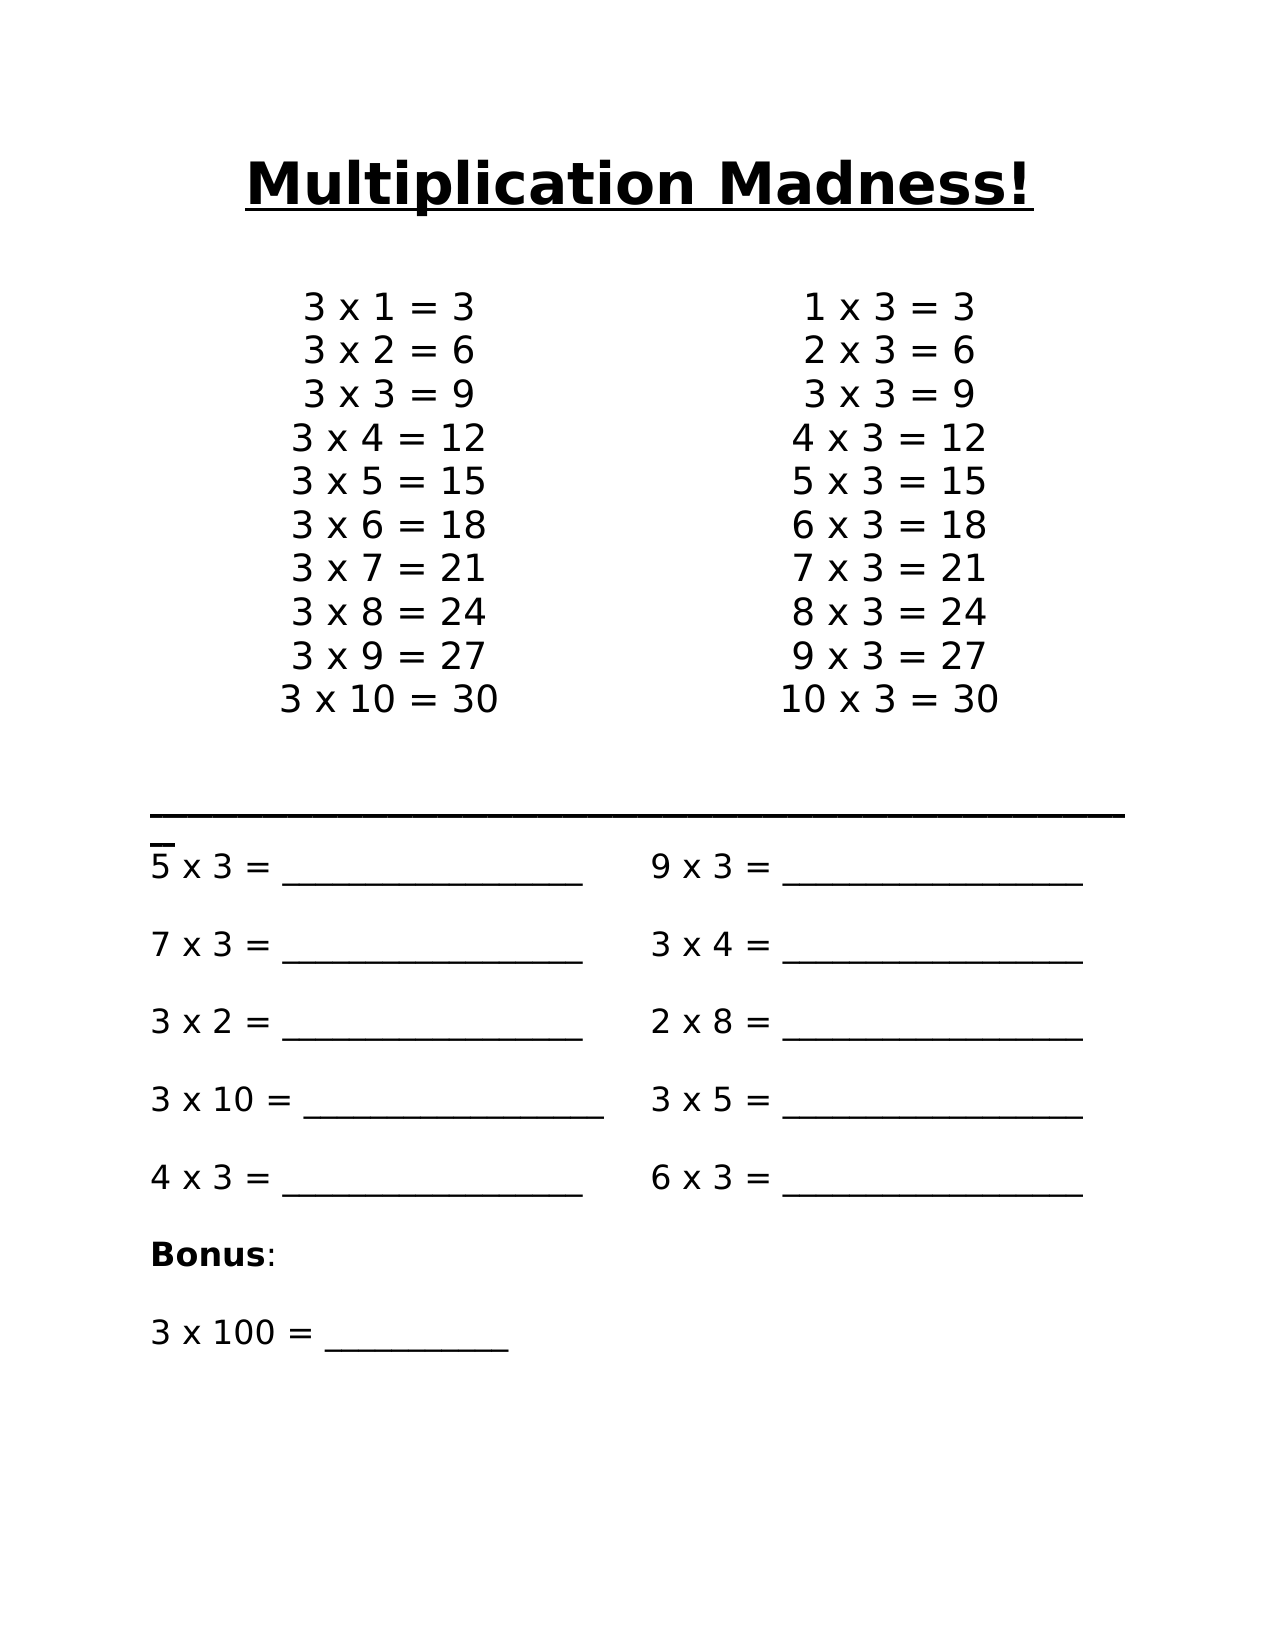 Browse Our Grade 5 Mathematics Resources